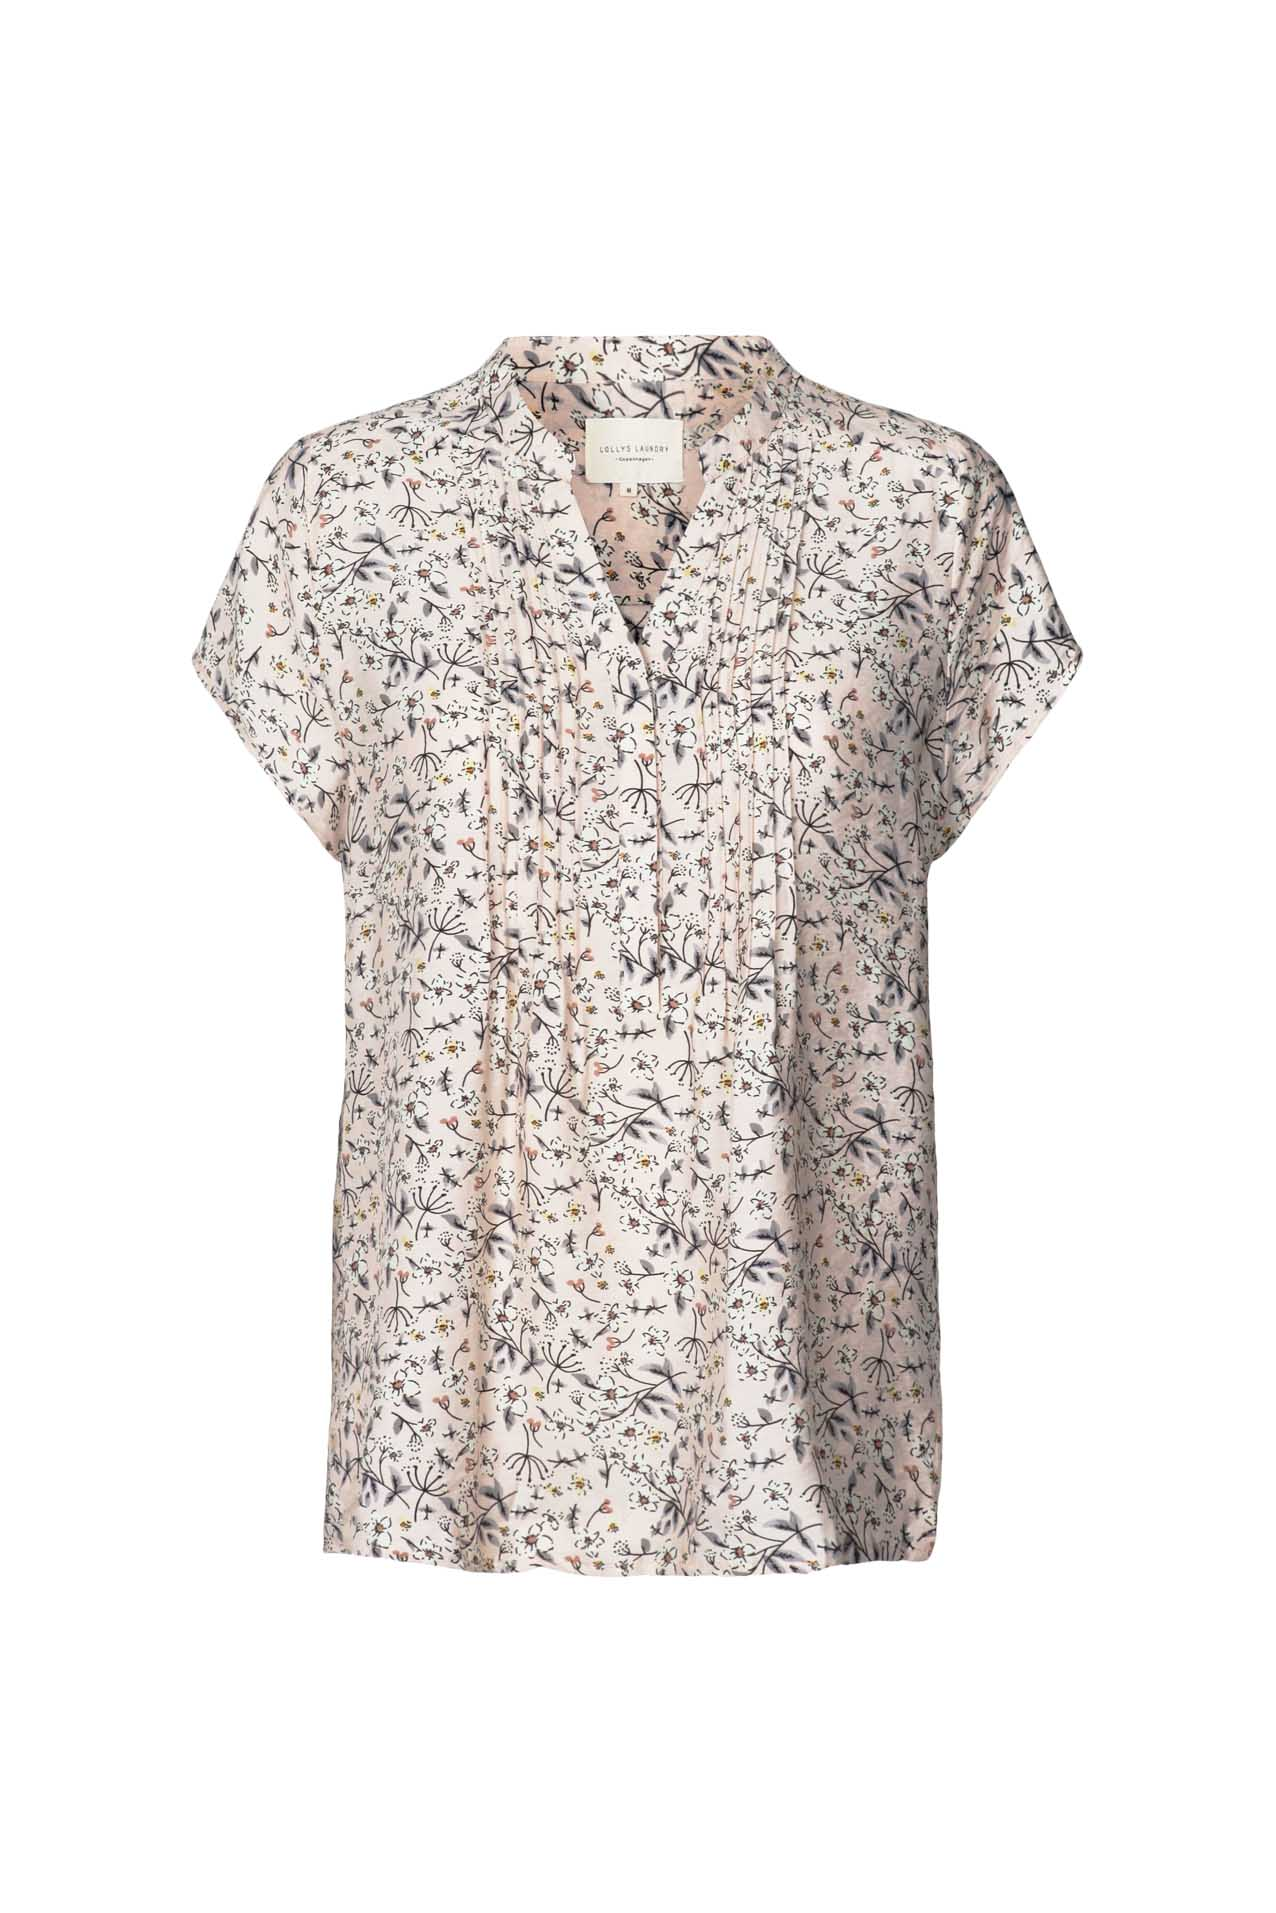 Lollys Laundry Heather top